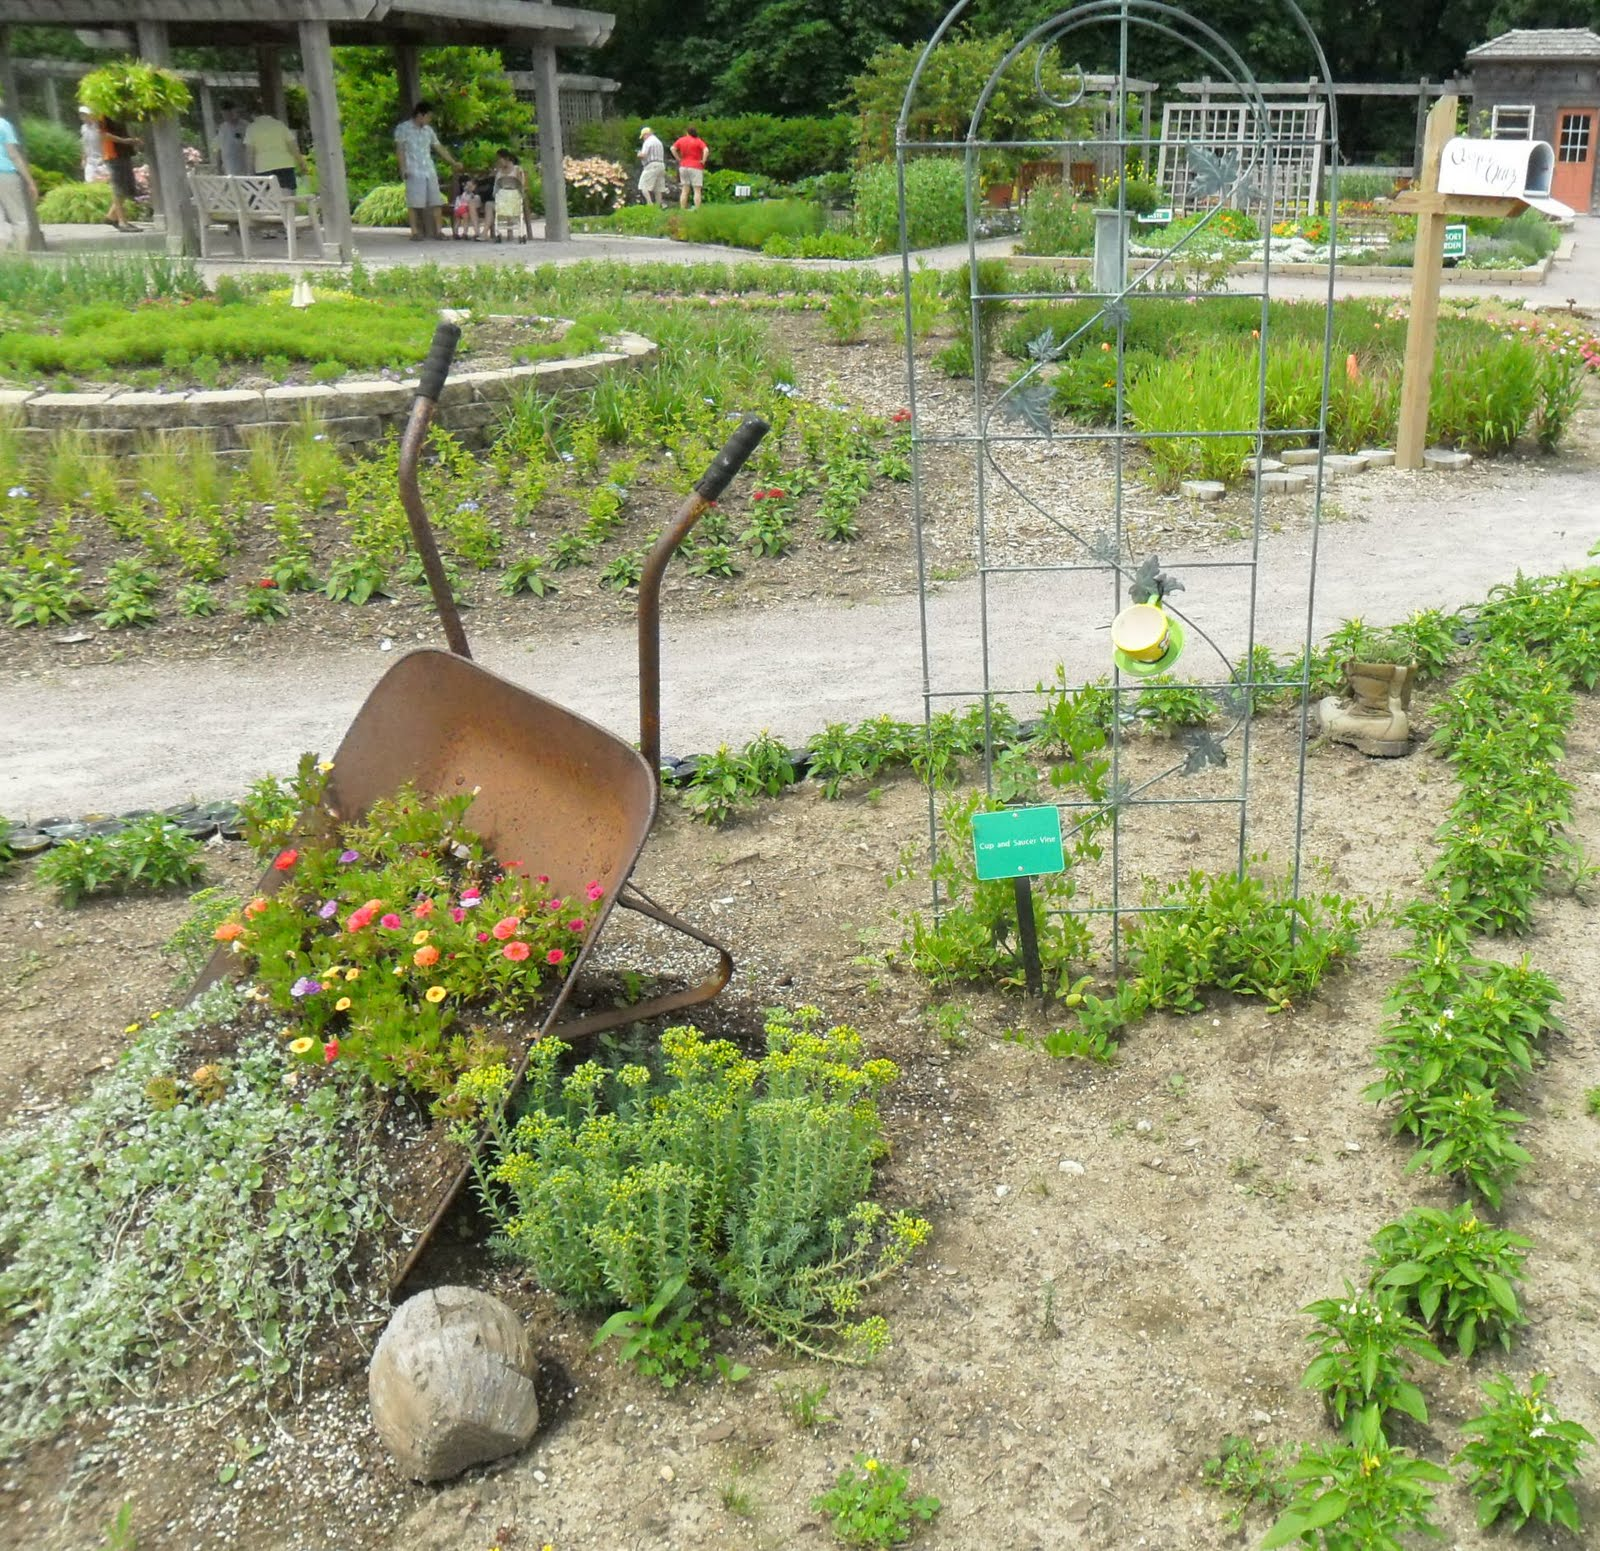 Flower Garden Ideas With Old Wheelbarrow backyard patch herbal blog: cantigny garden ideas